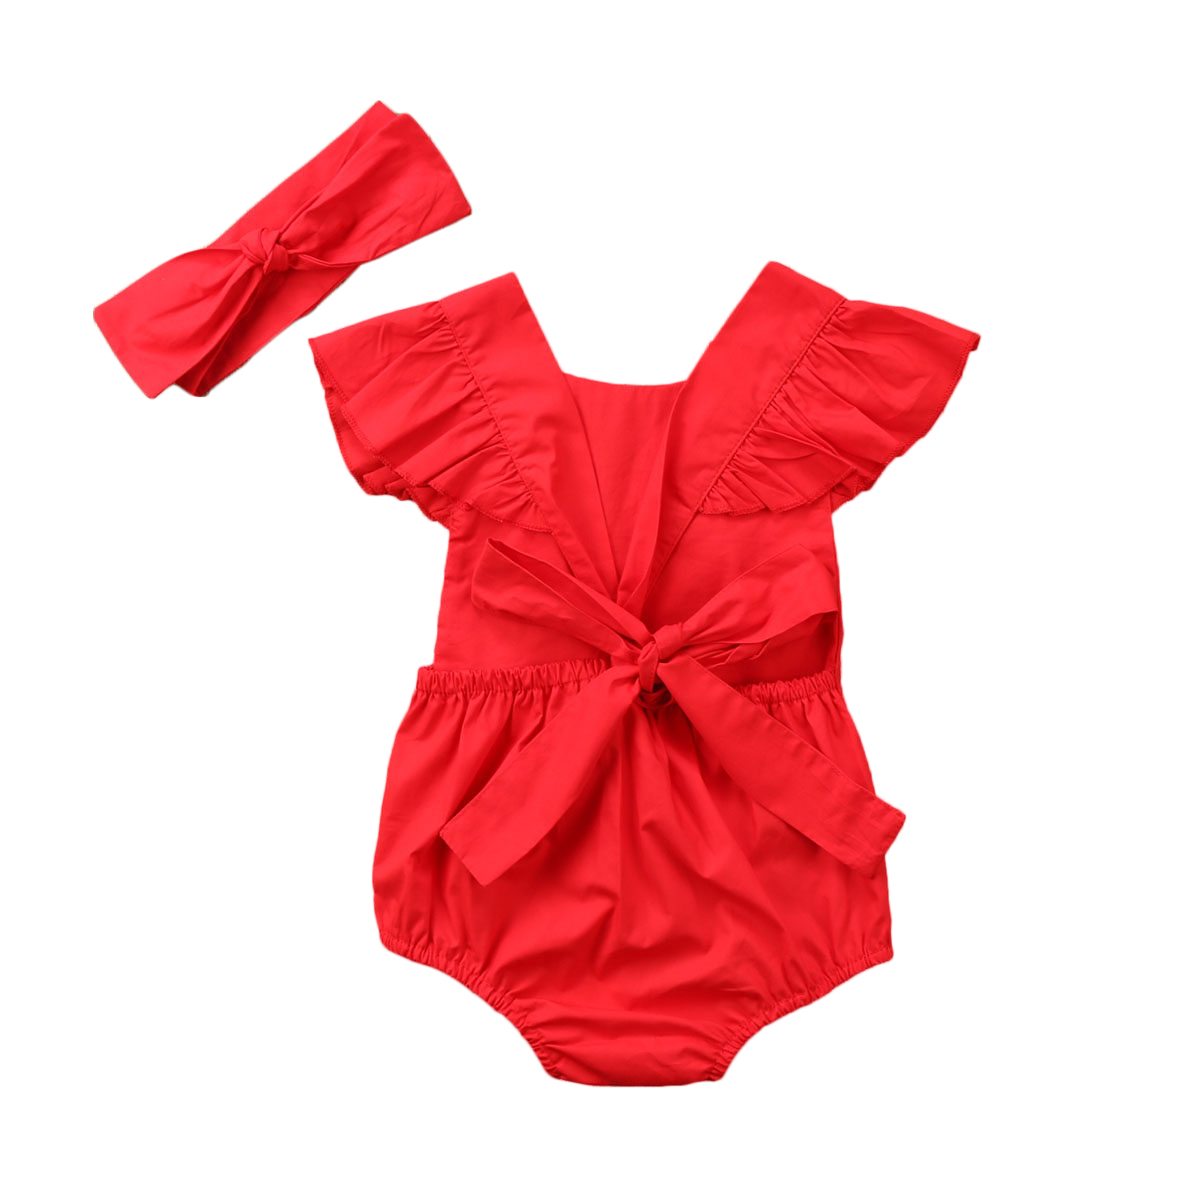 Christmas Newborn Toddler Infant Happy Baby Girl Clothes Outfits Floral Cotton Romper Sleeveless Bodysuit Children Clothing